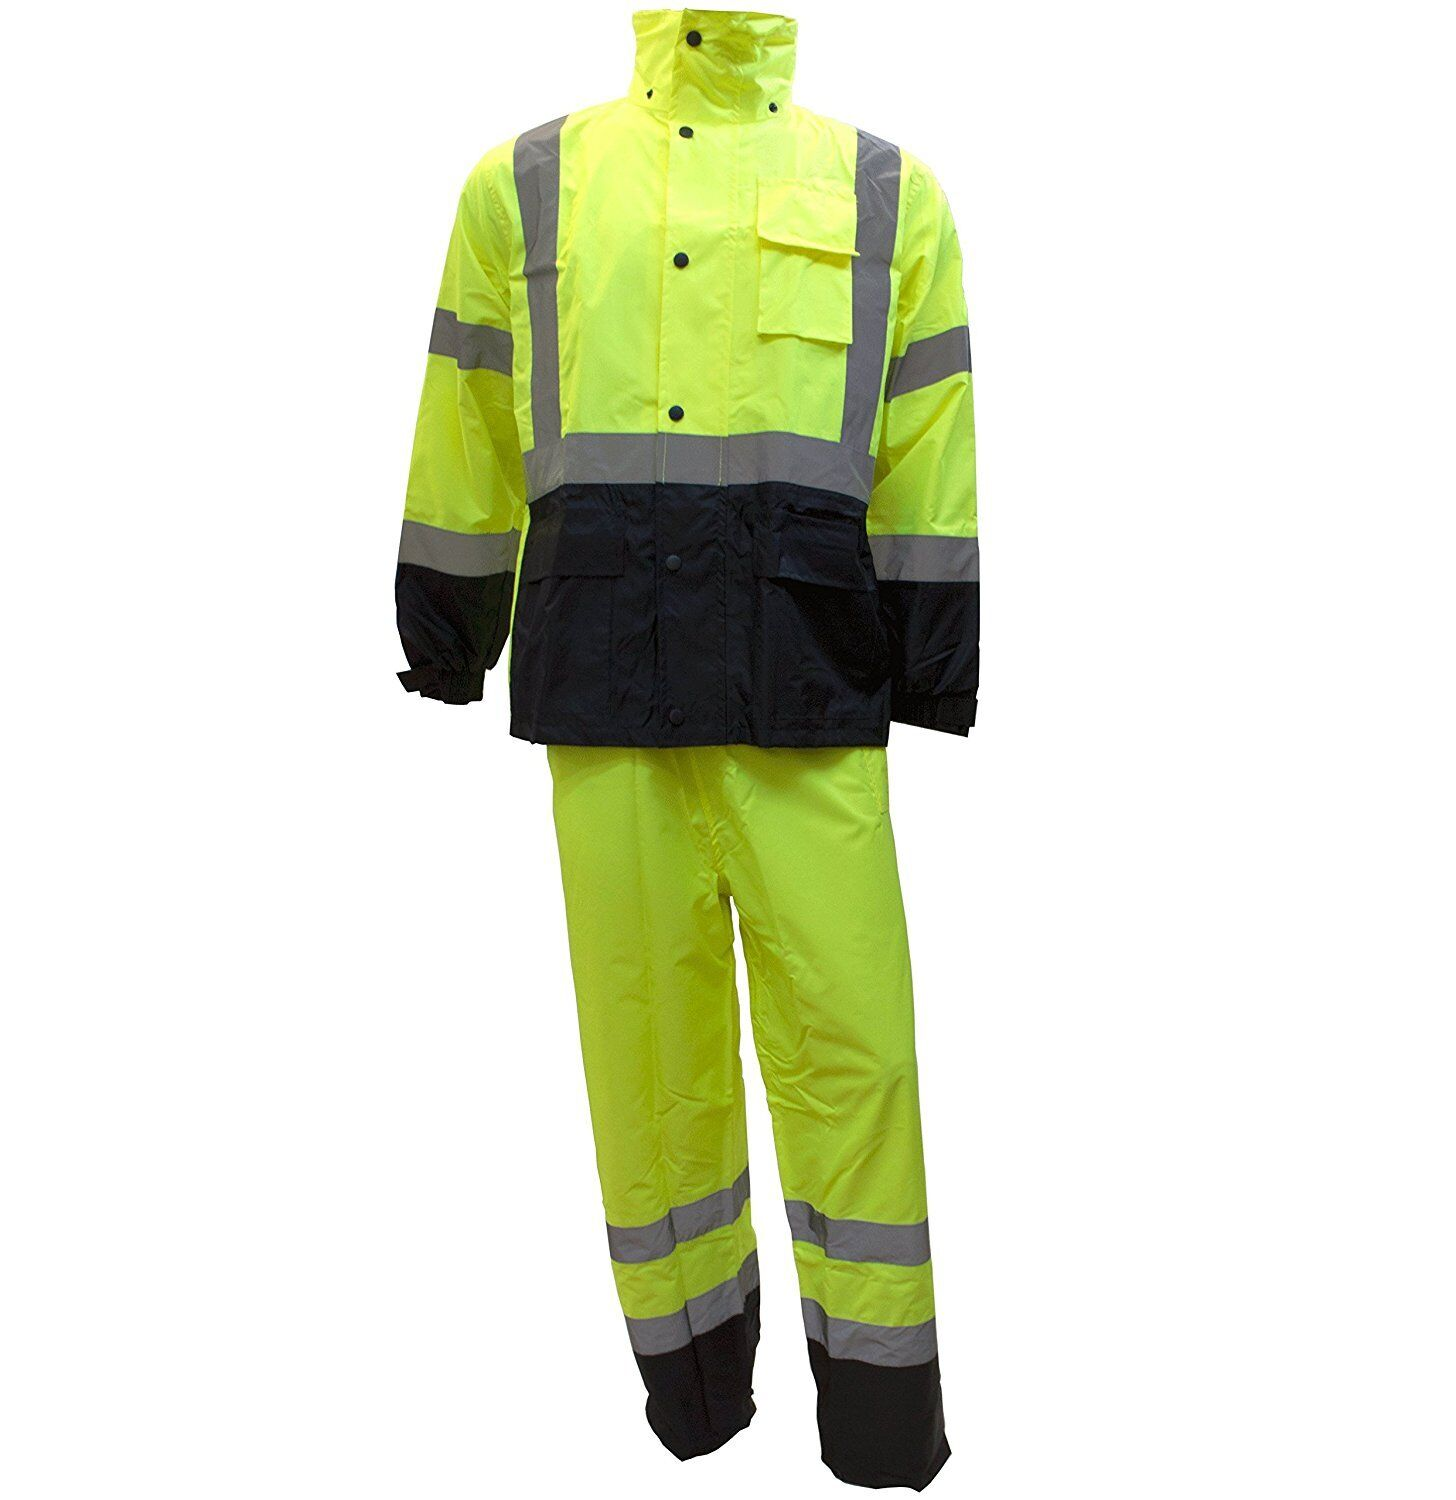 Rk Safety Class 3 Rain Suit High Visibility Reflective Bl...